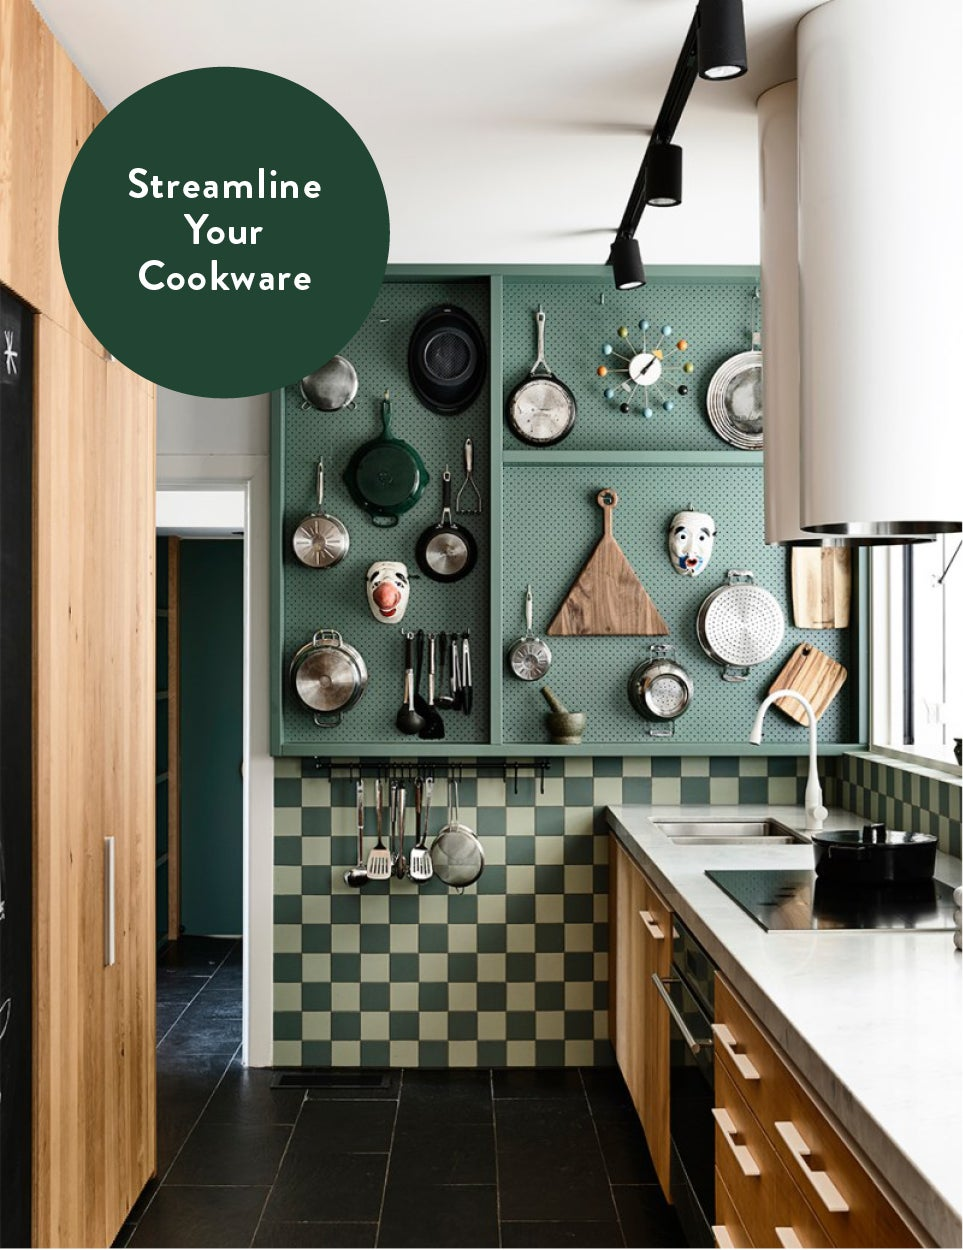 graphic showing green pegboard kitchen